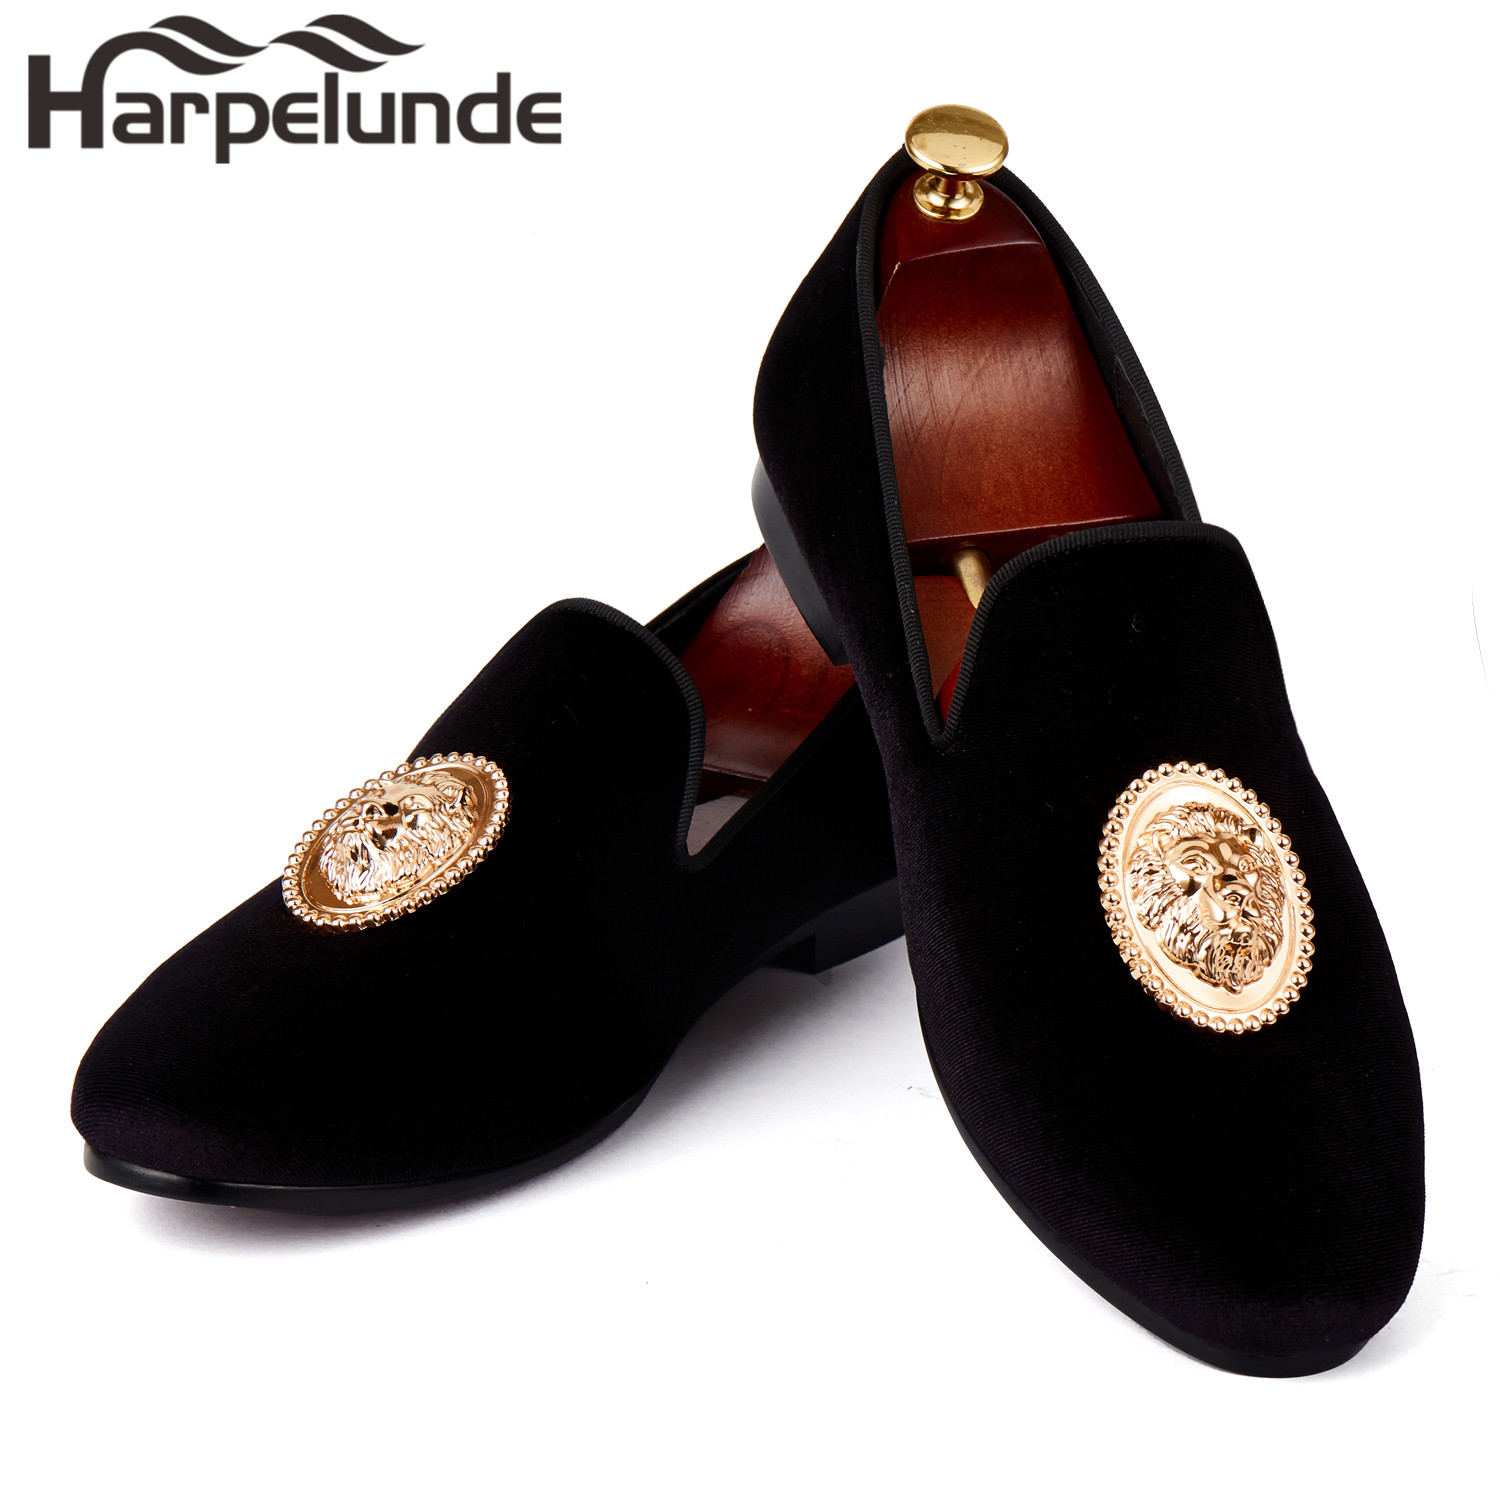 Harpelunde Men Event Shoes Lion Buckle Dress Shoes Black Velvet Loafer Slippers Tamaño 6-14